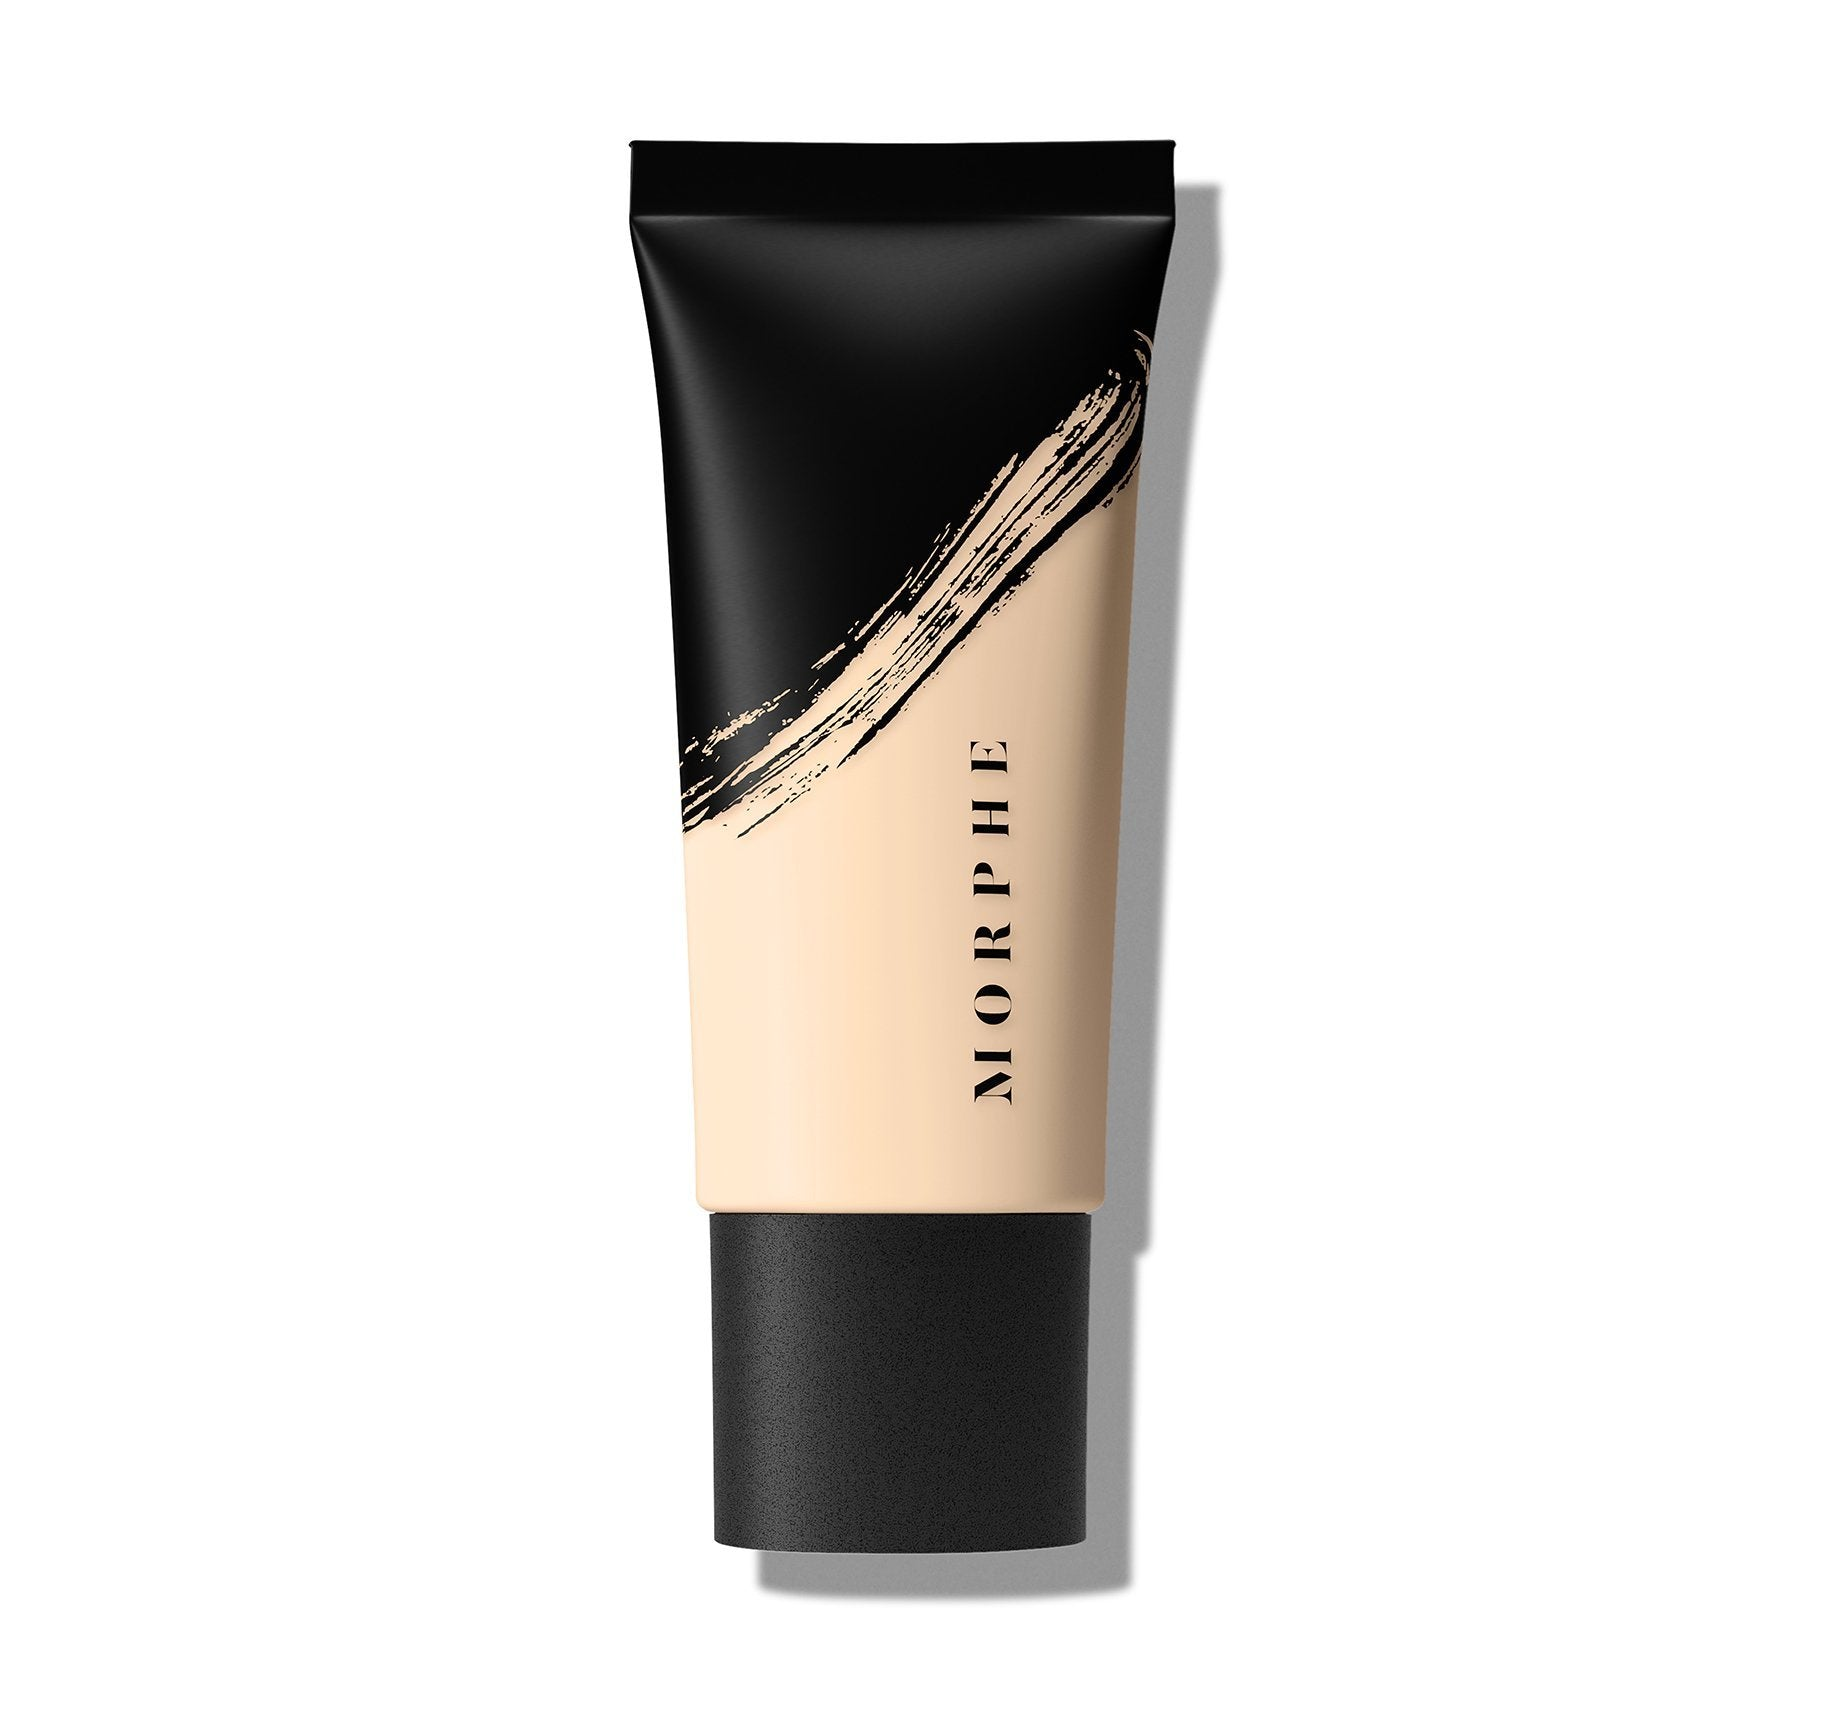 FLUIDITY FULL-COVERAGE FOUNDATION - F1.20, view larger image